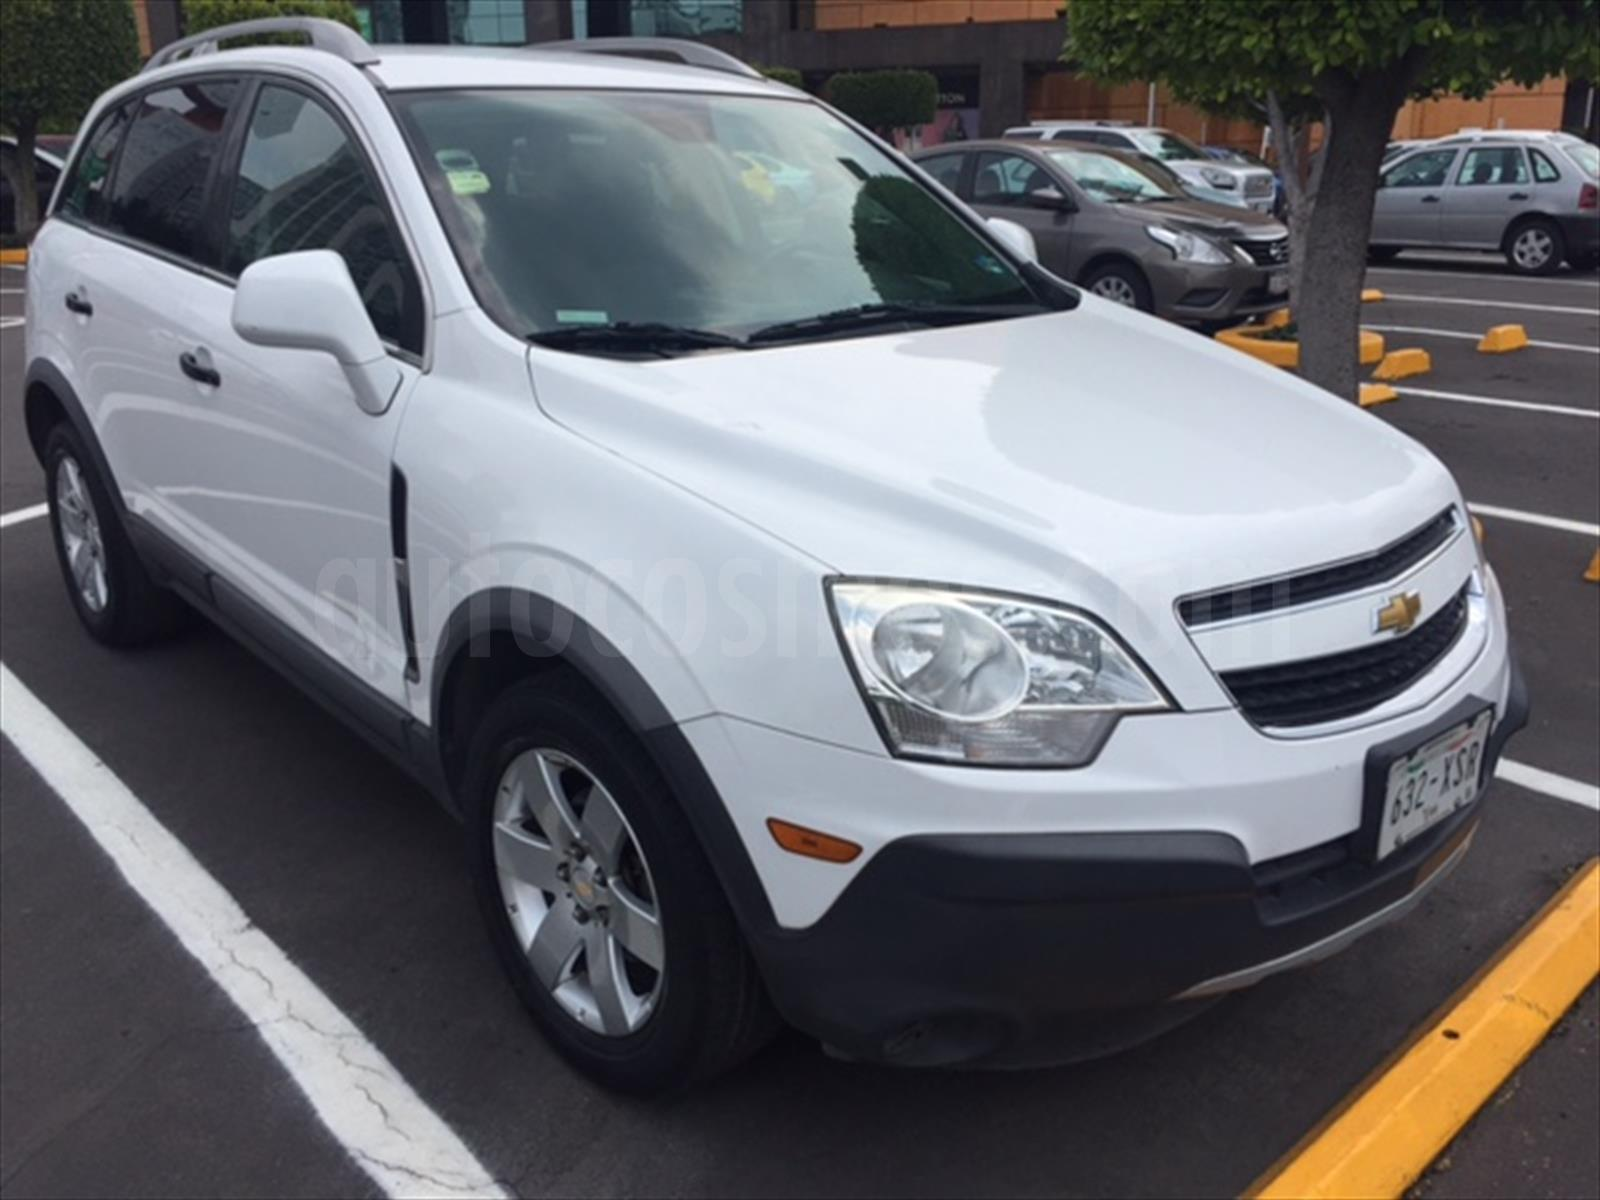 Venta autos usado - Estado de Mexico - Chevrolet Captiva